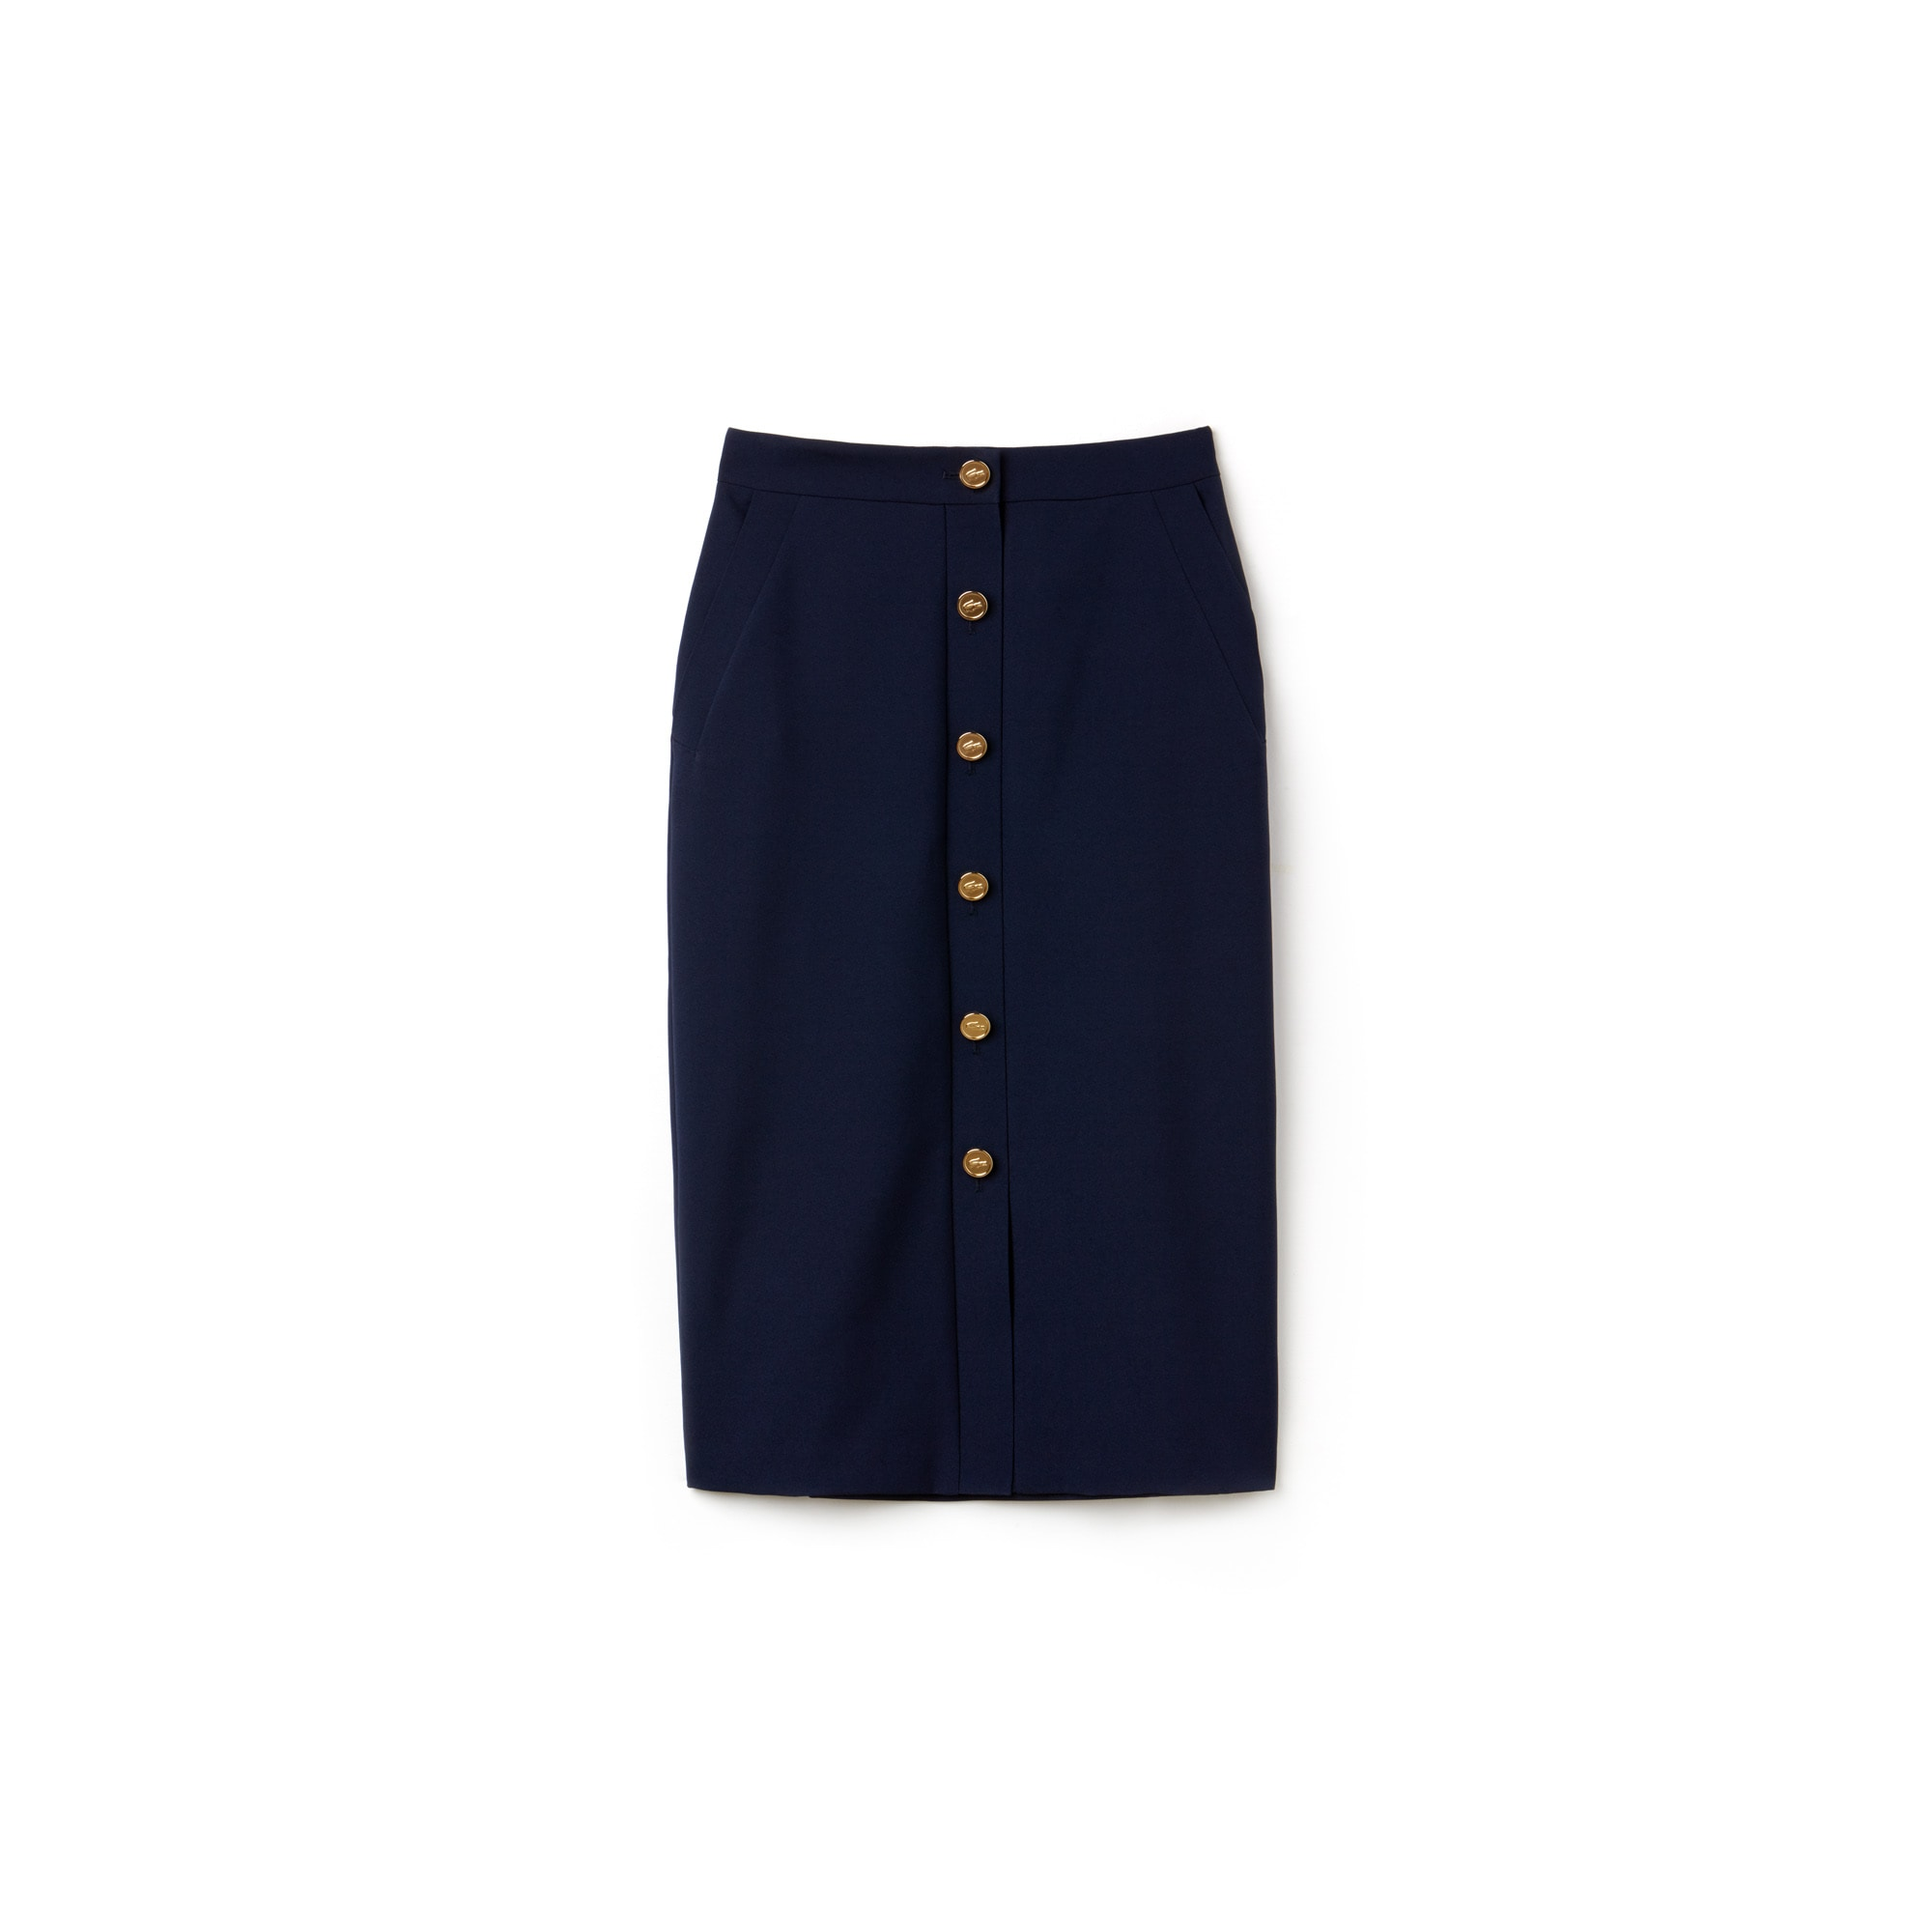 Women's Fashion Show High-Waisted Buttoned Crepe Skirt